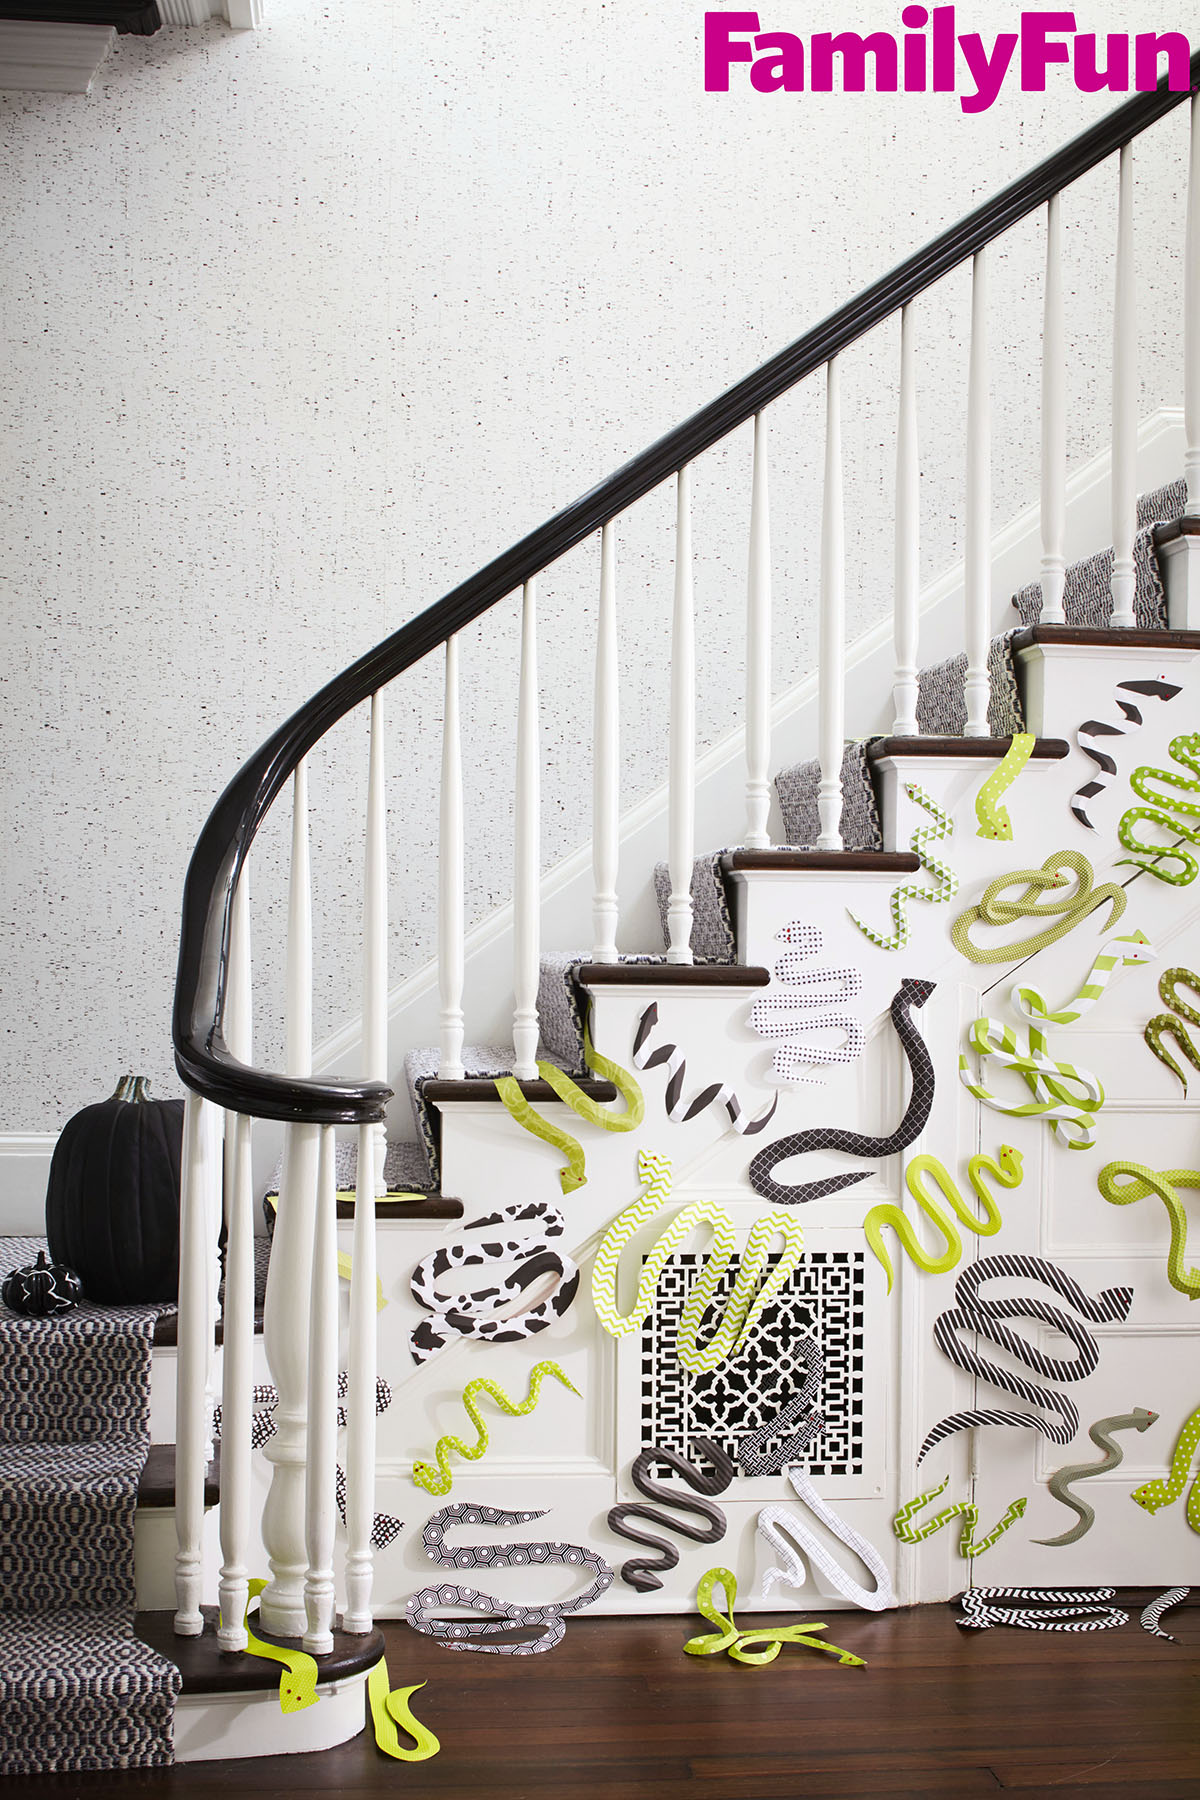 Slithering Stairs - easy DIY Halloween decor idea